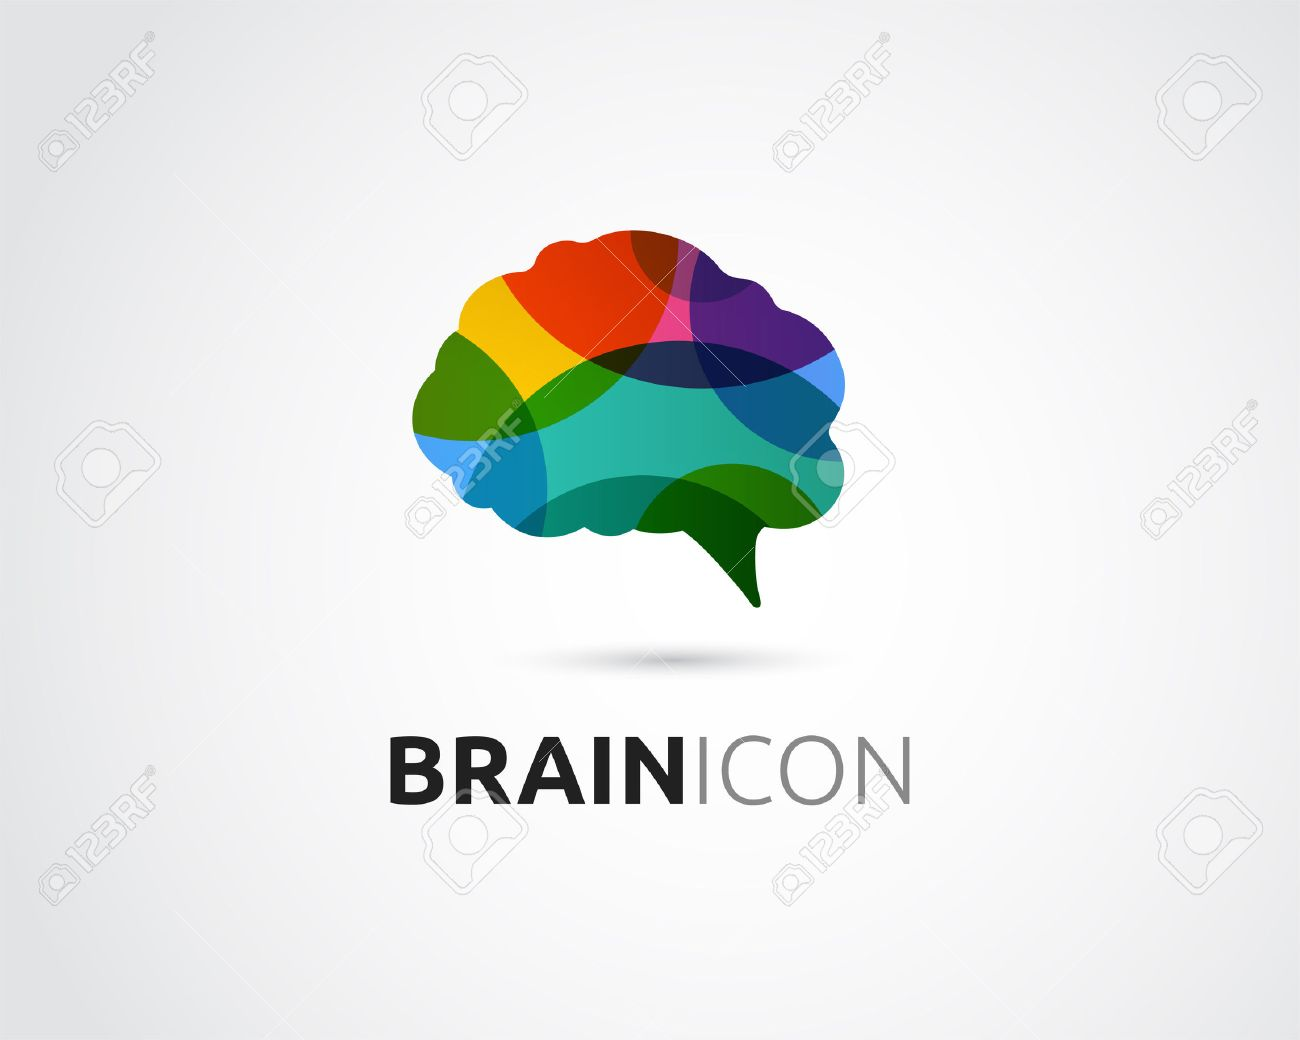 Brain, smart, Creative mind, learning and design icons. Man head, people colorful symbol - 58658764